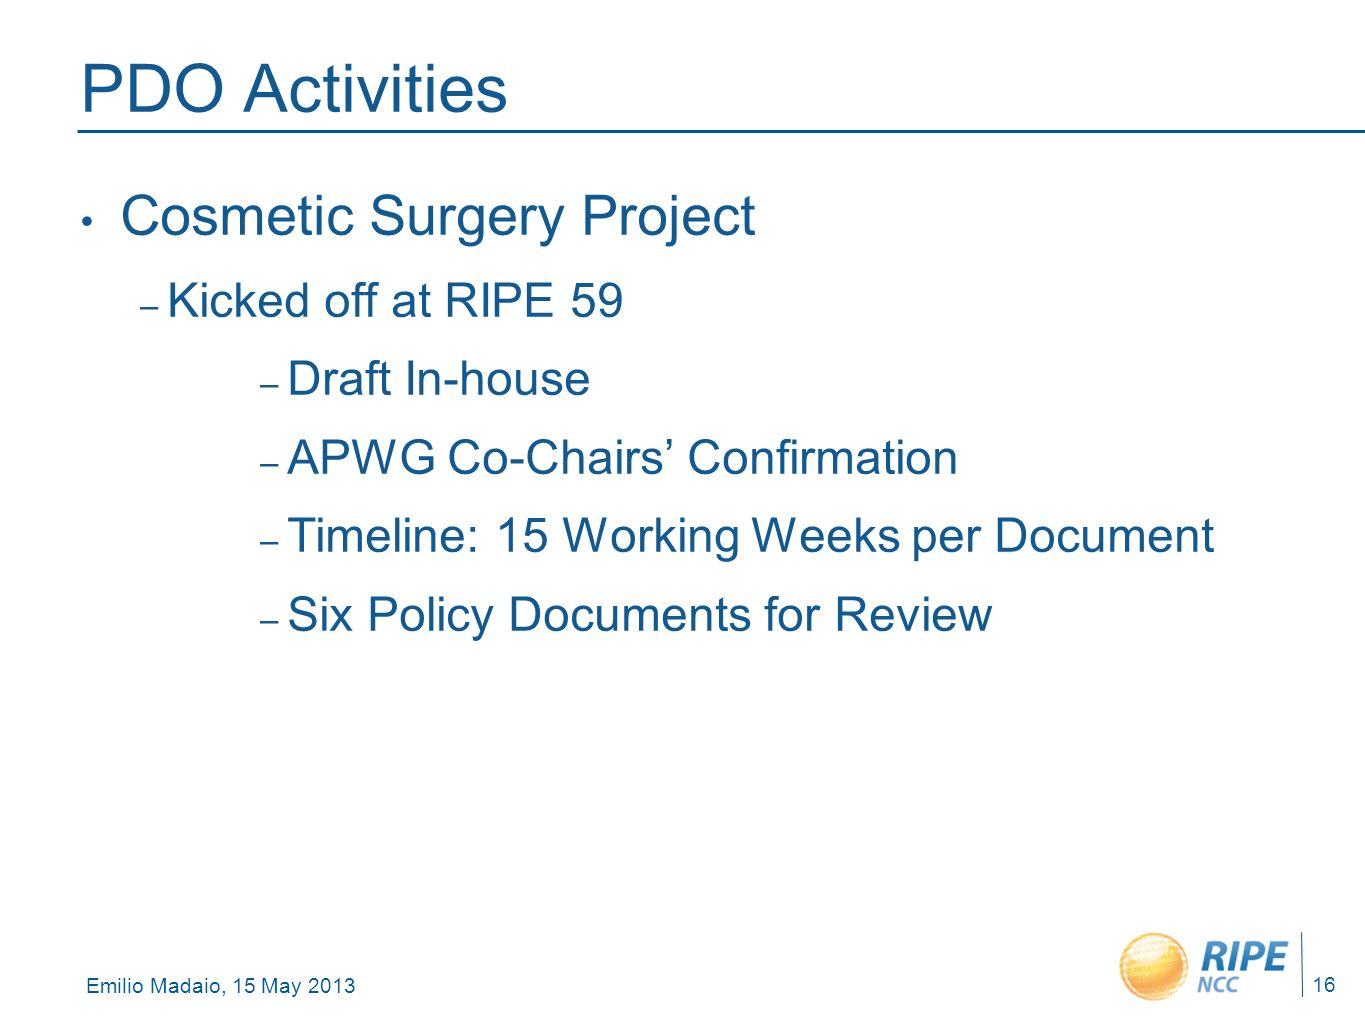 Emilio Madaio, 15 May 2013 16 PDO Activities Cosmetic Surgery Project – Kicked off at RIPE 59 – Draft In-house – APWG Co-Chairs Confirmation – Timeline: 15 Working Weeks per Document – Six Policy Documents for Review